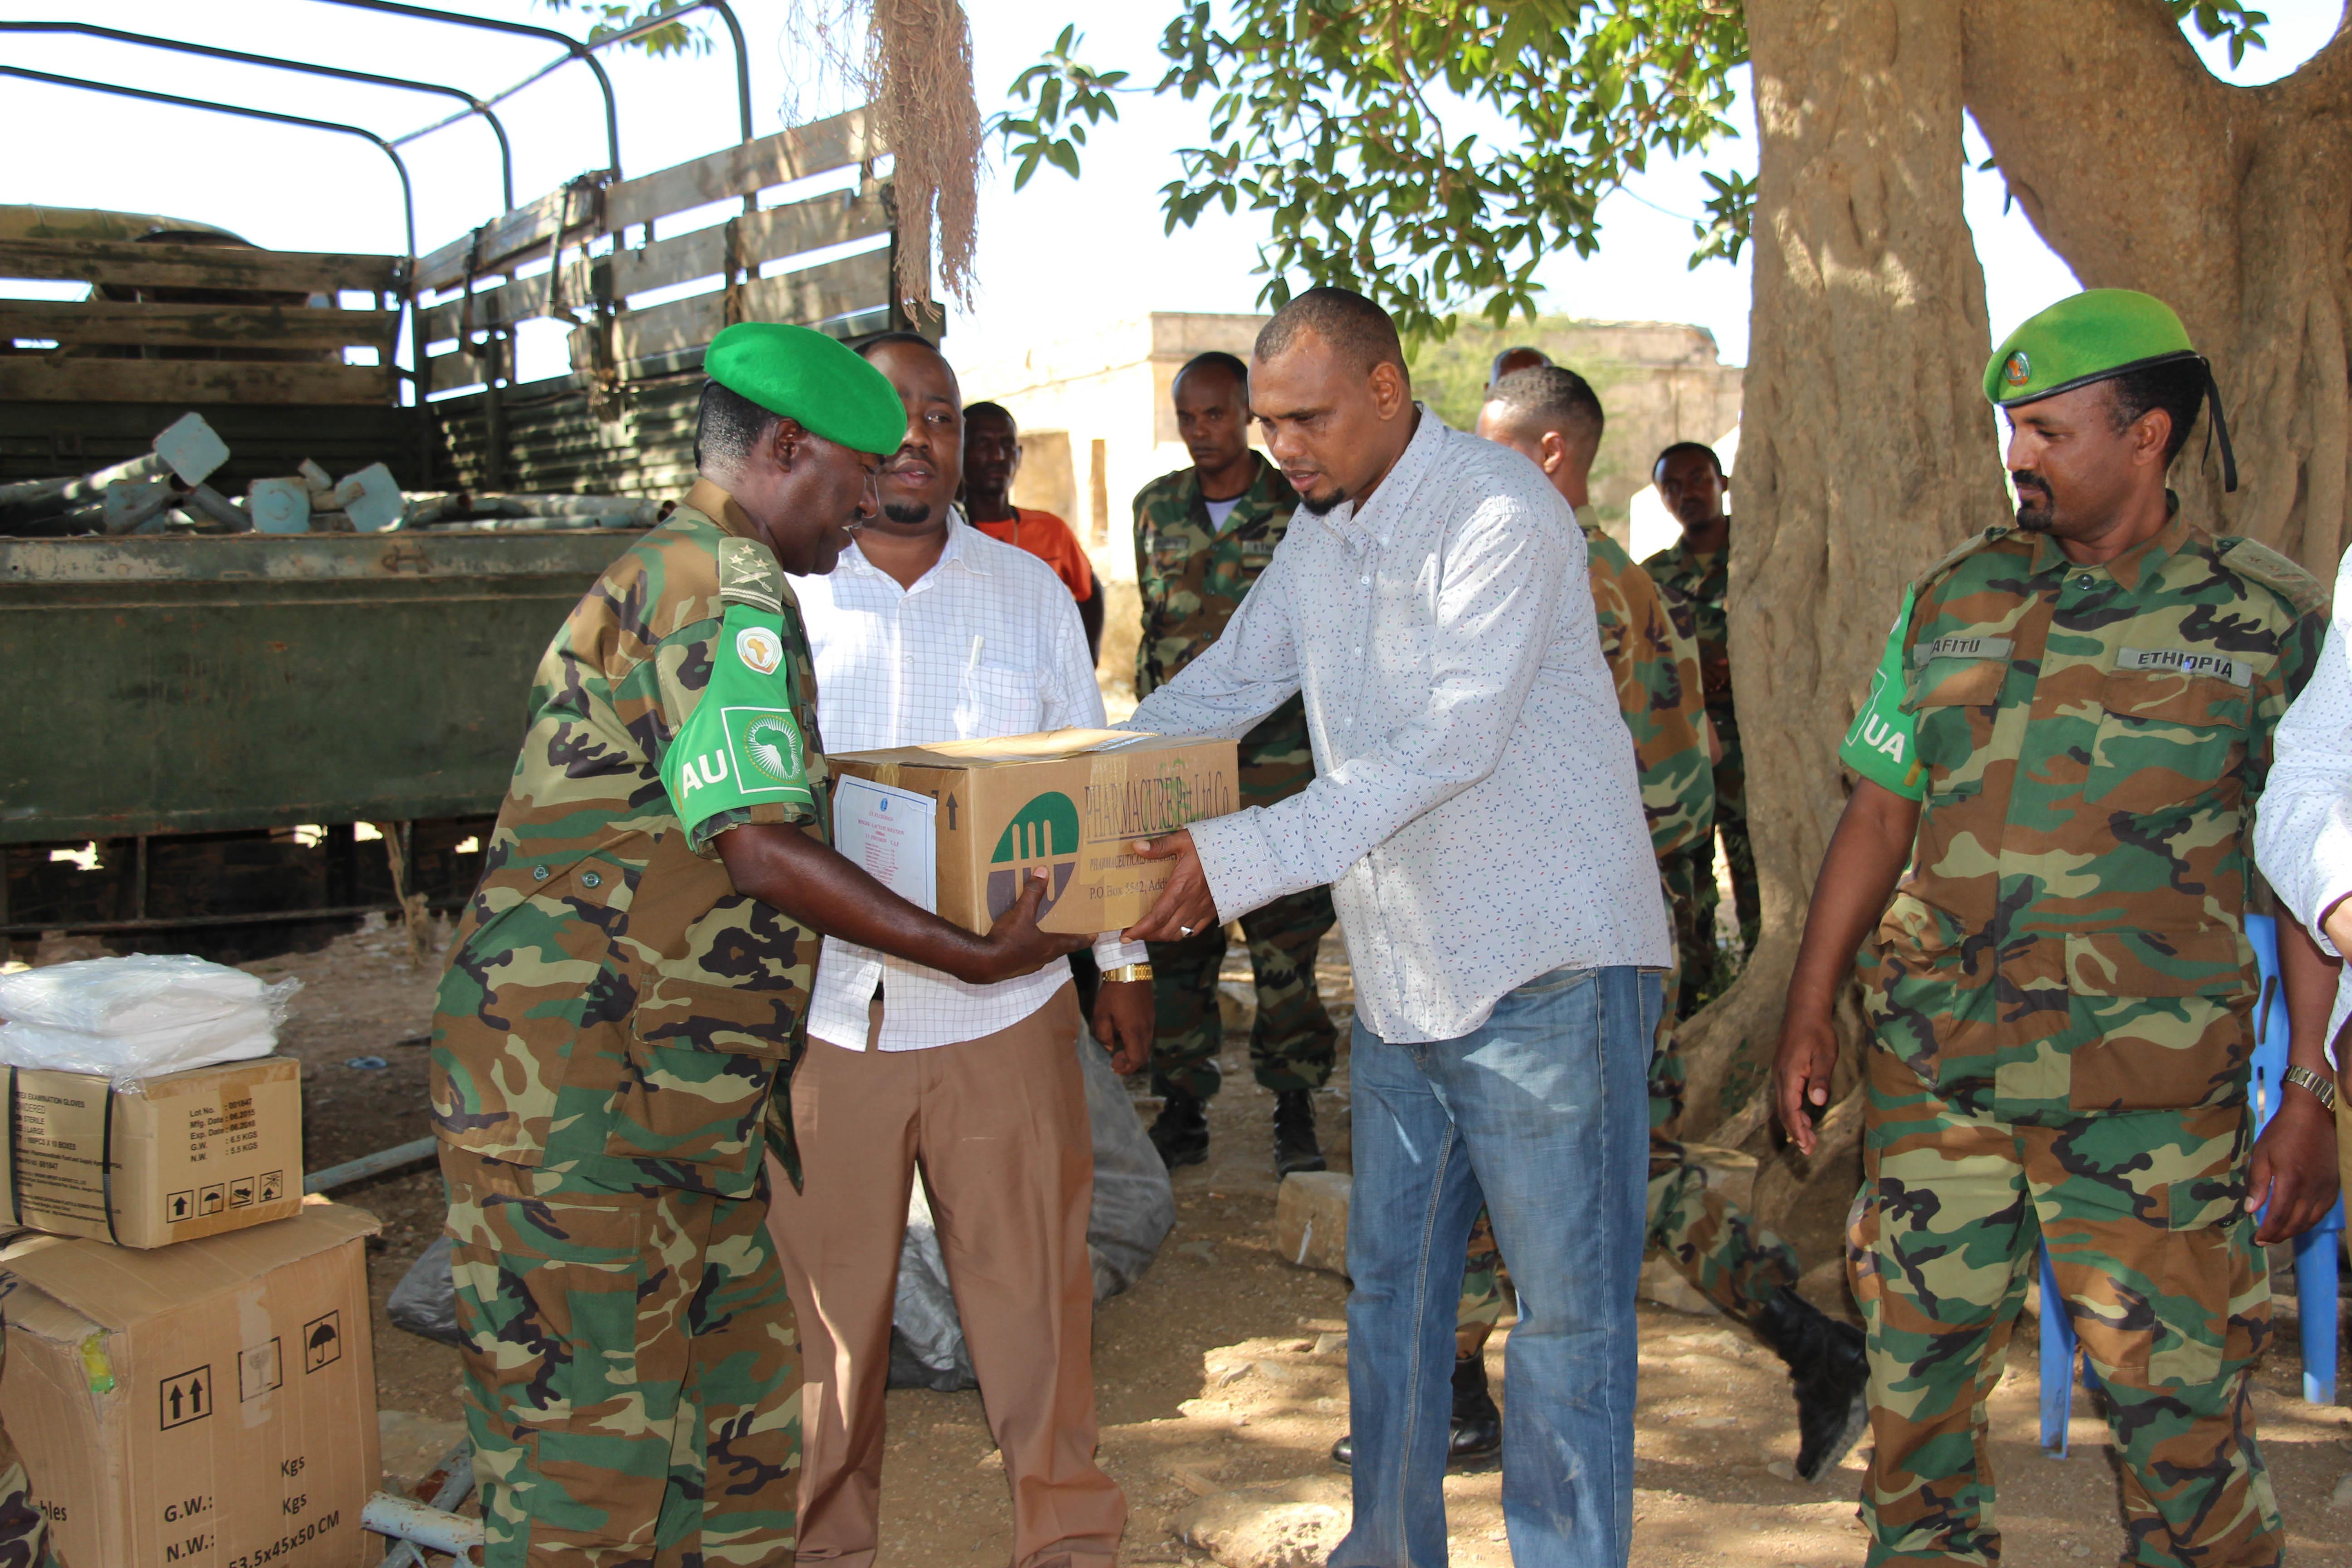 2017 04 ENDF Renovate Wells-6 (31985970181).jpg English: Military officers from the African Union Mission in Somalia (AMISOM) Ethiopian contingent